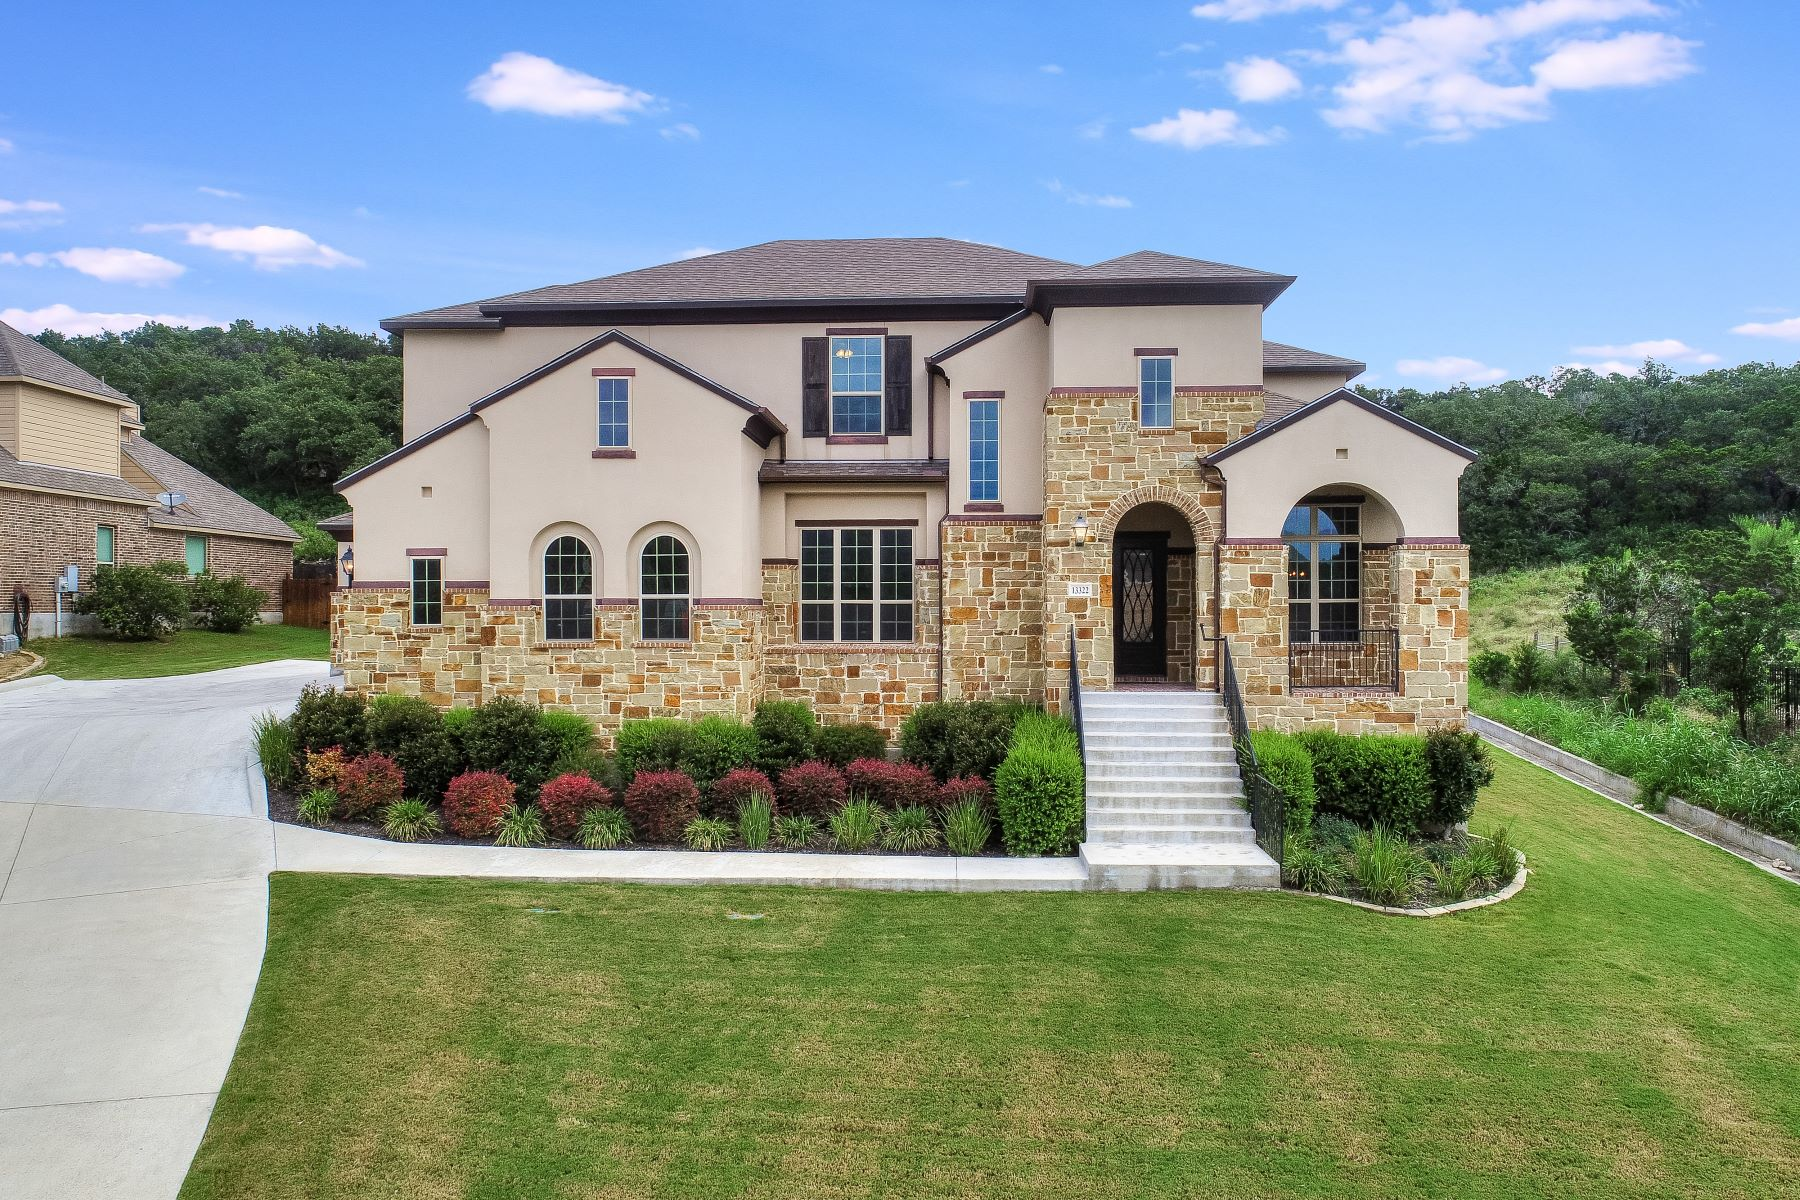 Single Family Homes for Active at 13322 Trotting Path, Helotes, TX 78023 13322 Trotting Path Helotes, Texas 78023 United States